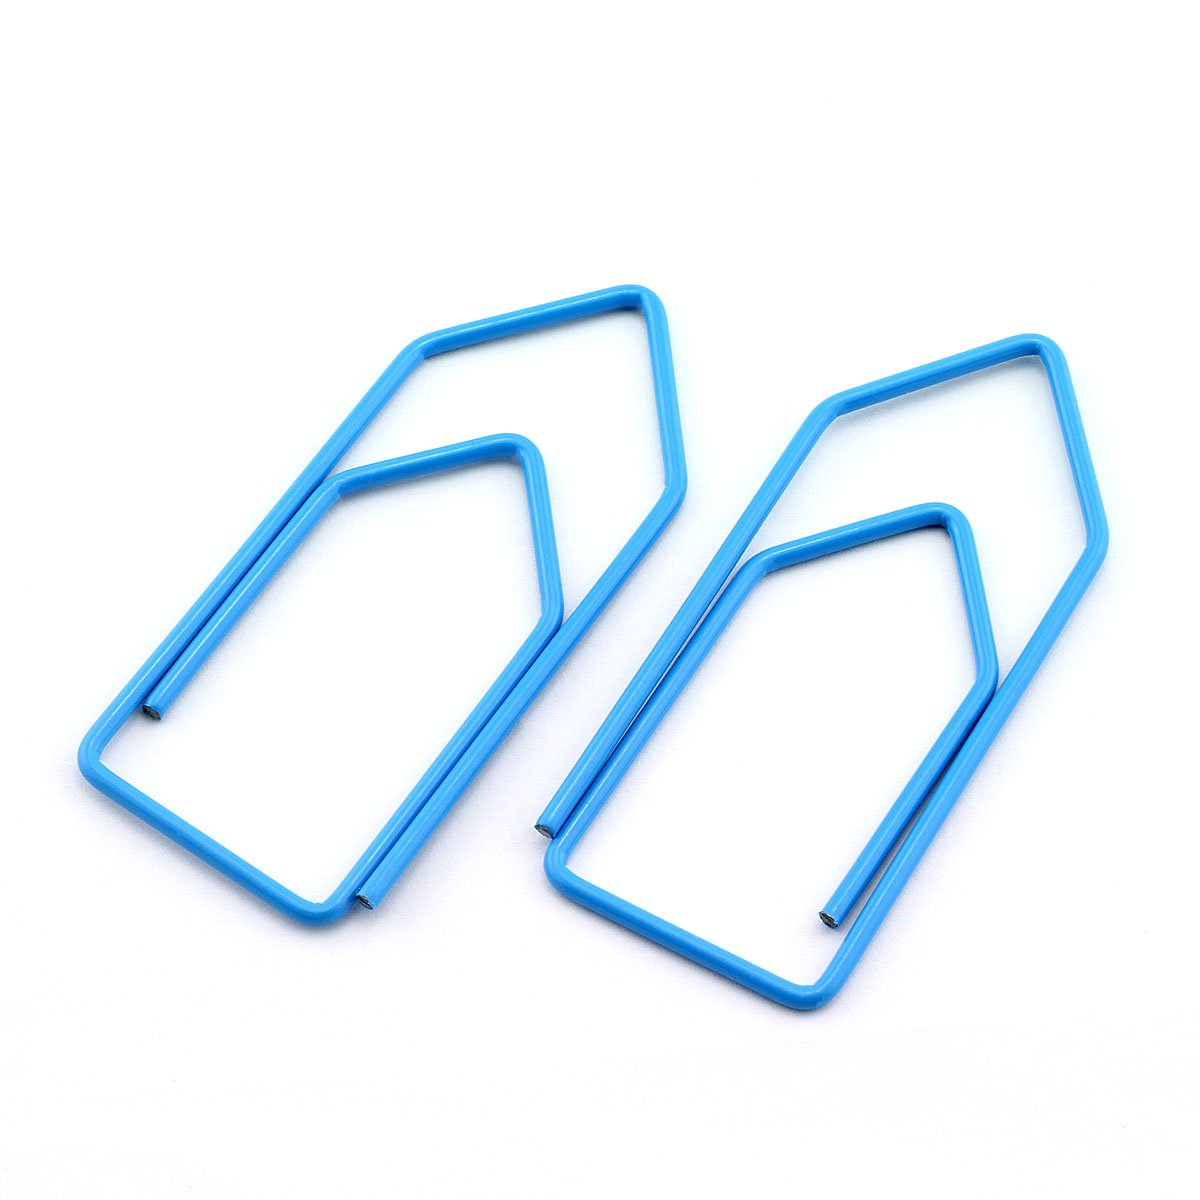 RuiLing 30-Pack Paper Clips,Light Blue Creative Shape 2.7 inch Length Great for Paper Clip Collectors Bookmark Document Holder Office School